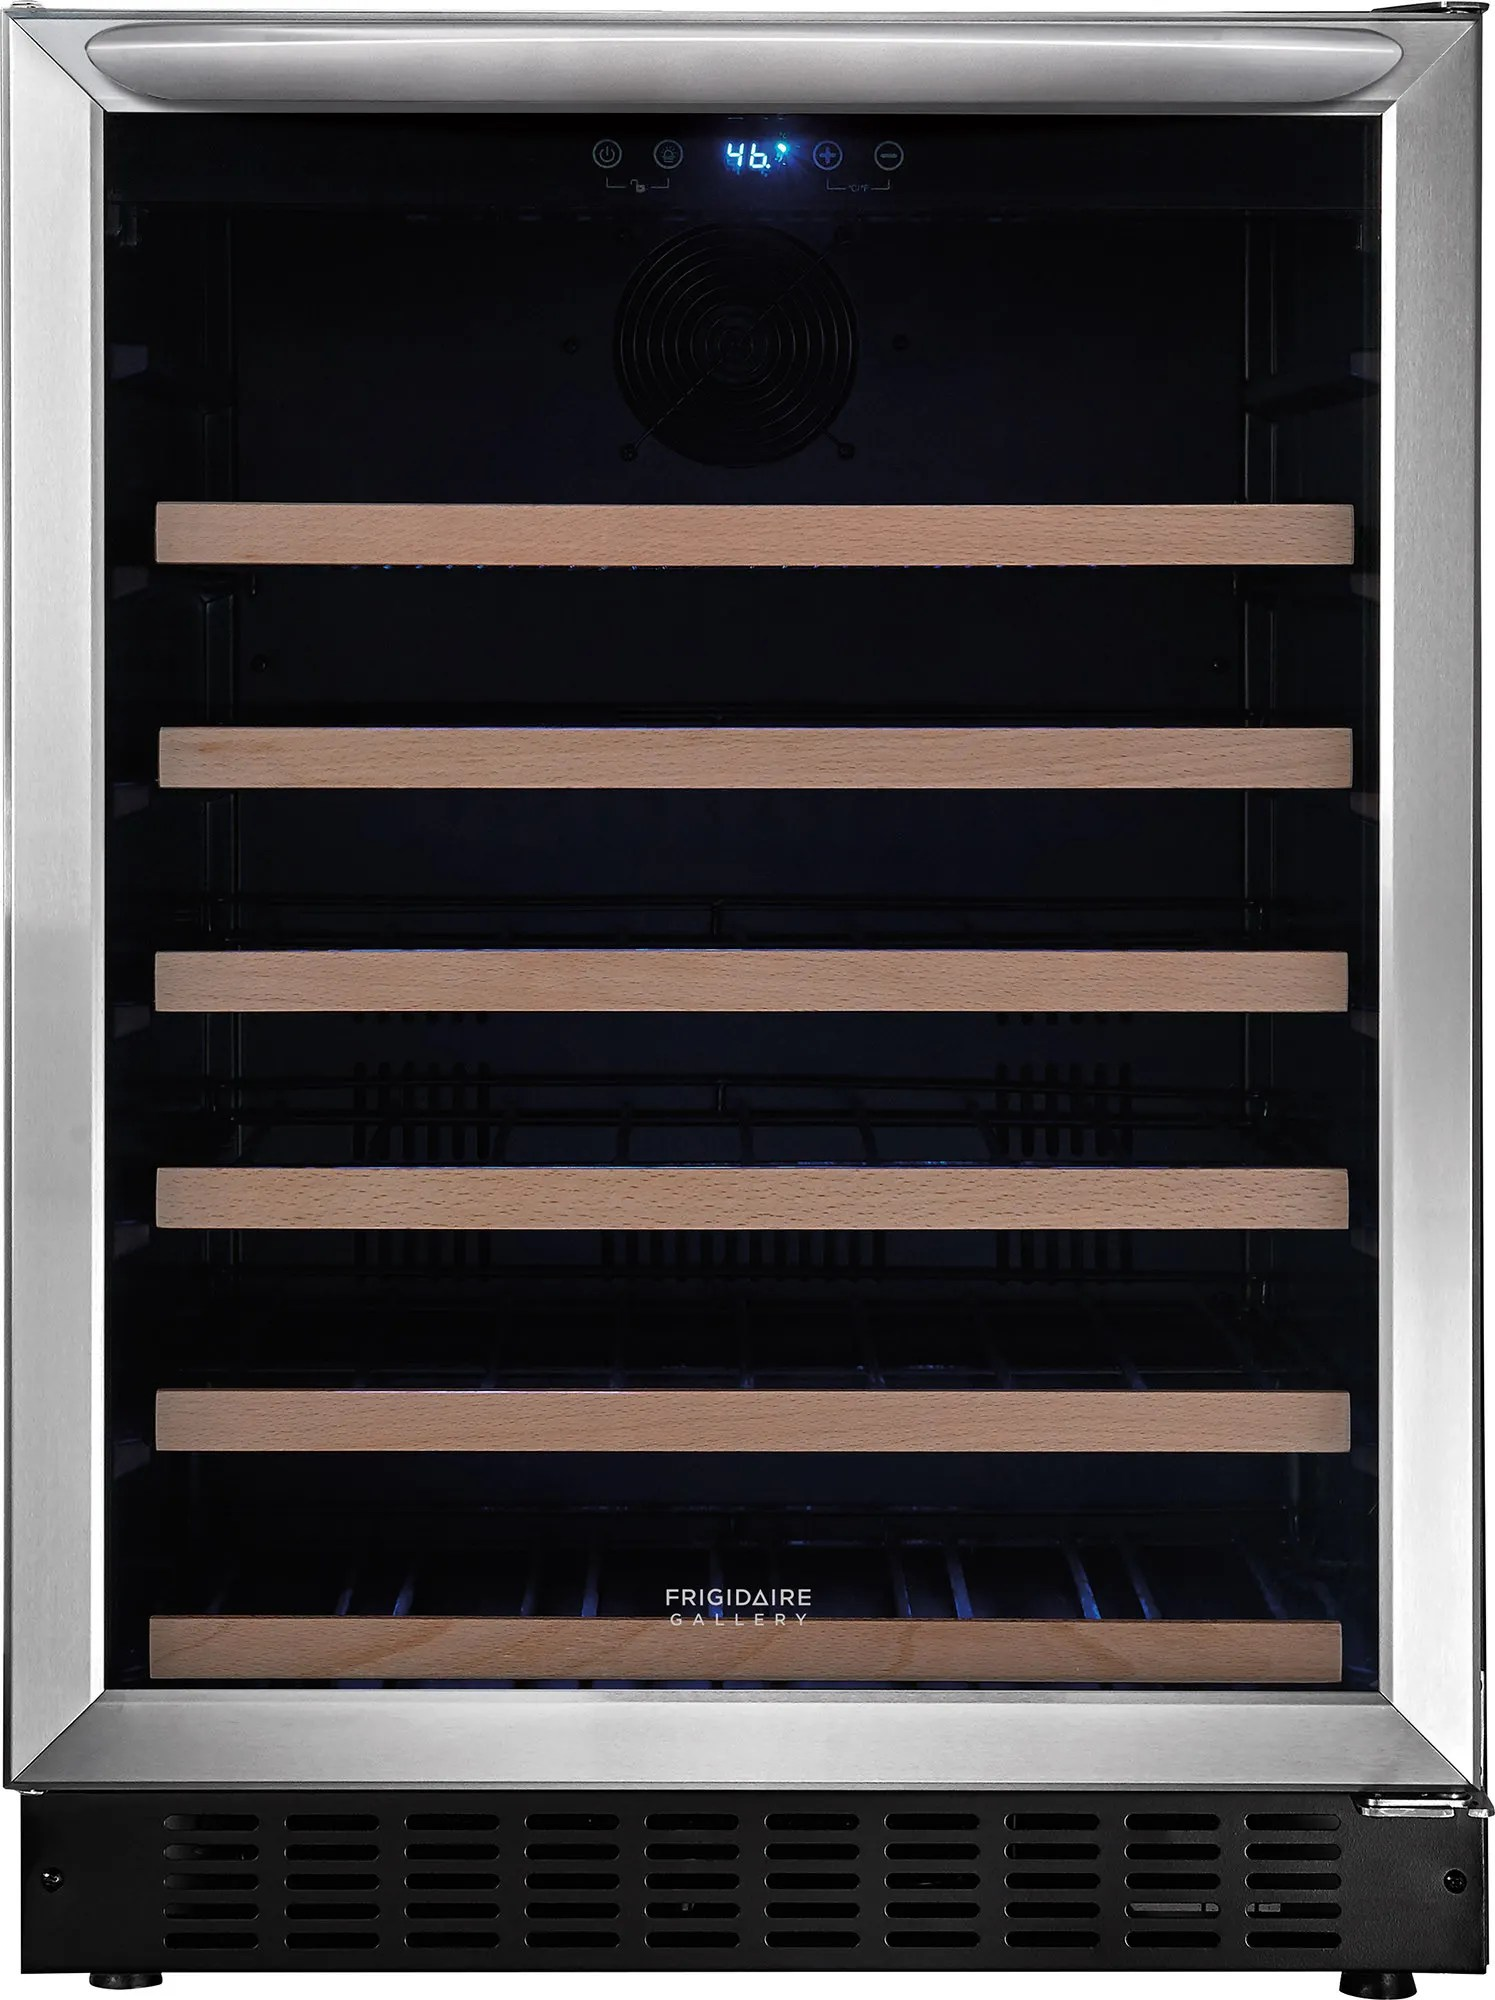 Frigidaire FGWC4633SS 24 Inch Freestanding Or Built In